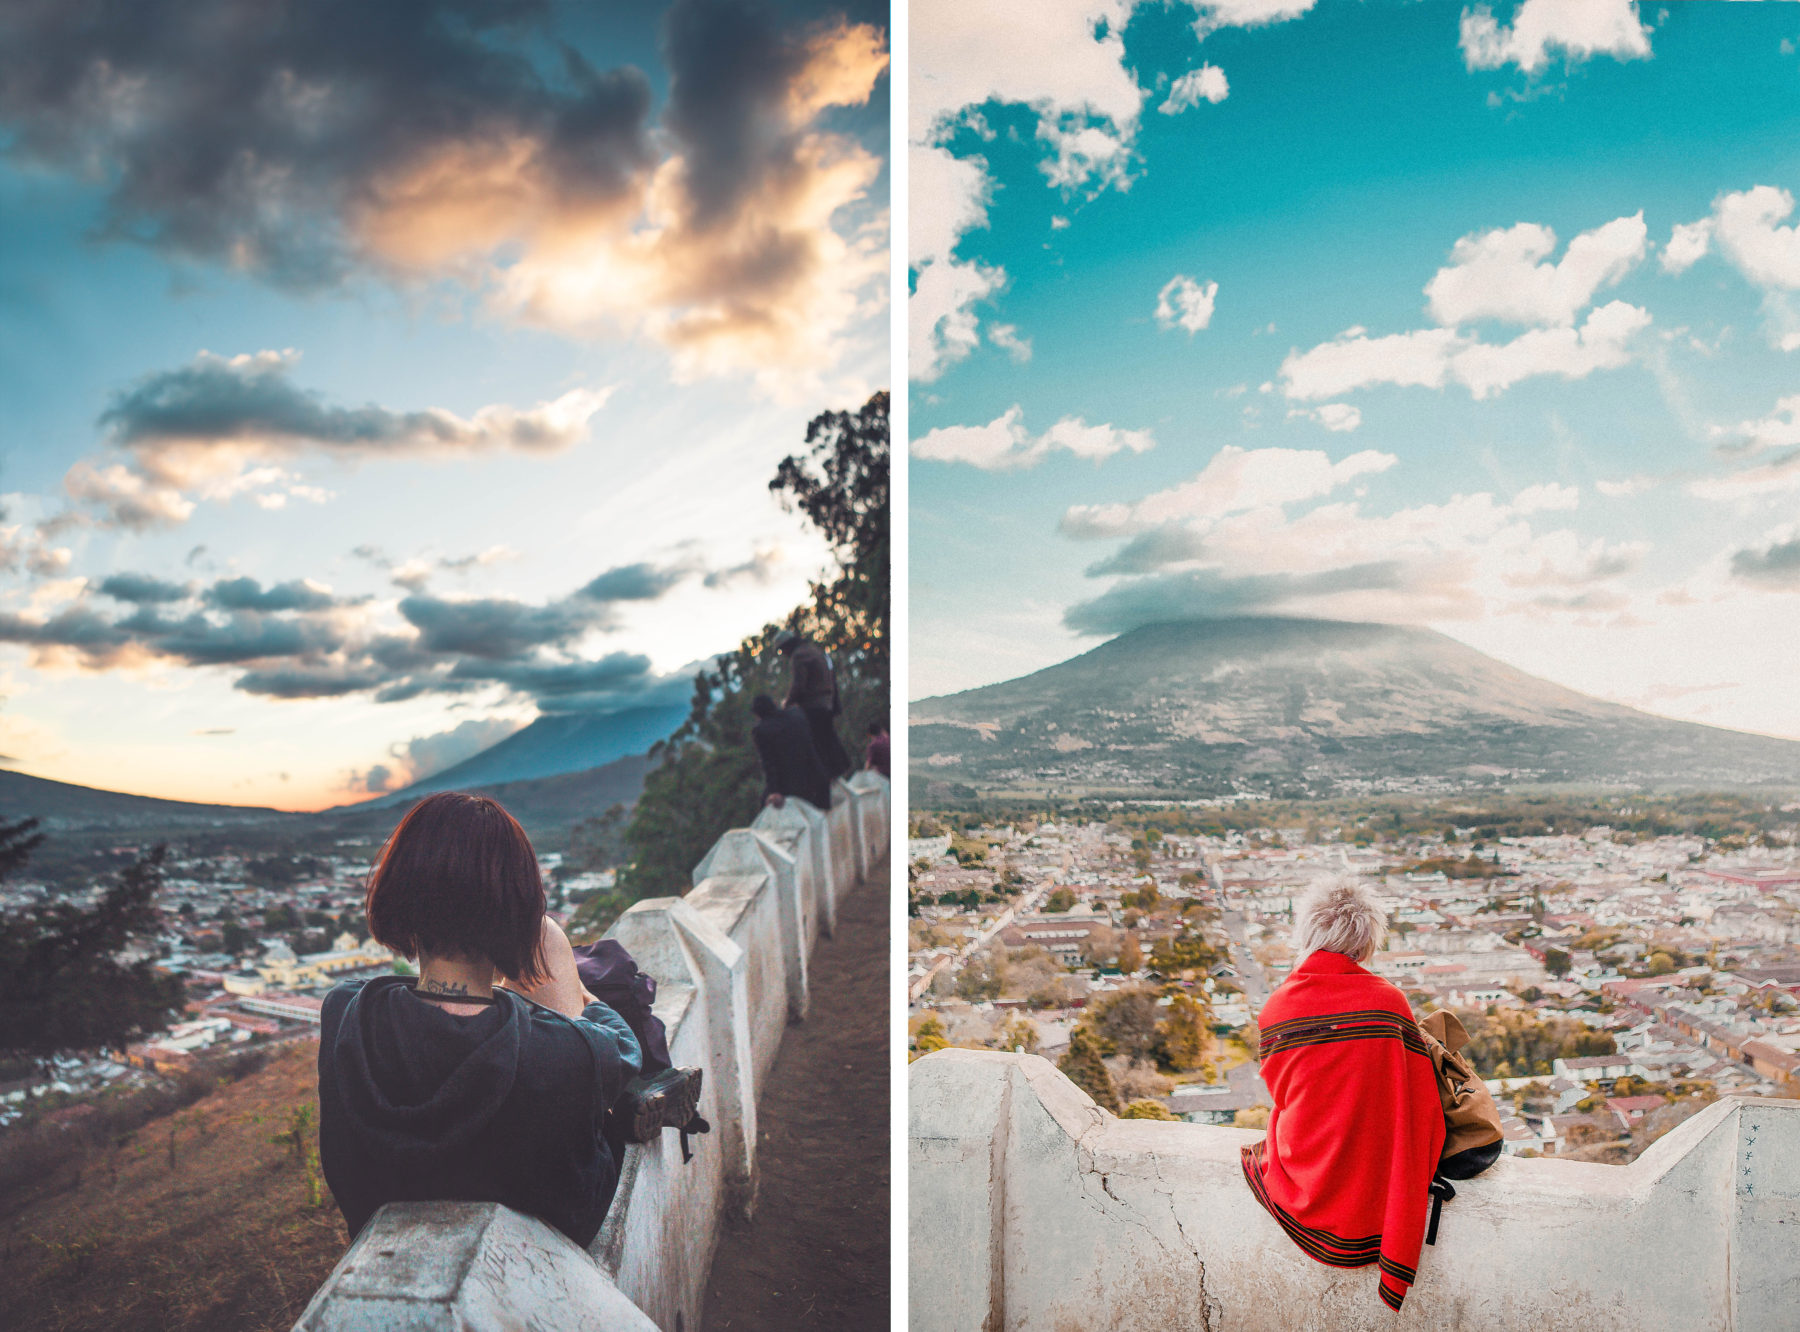 antigua guatemala colourful colonian central america local people volcano streets view from top cerro de la cruz